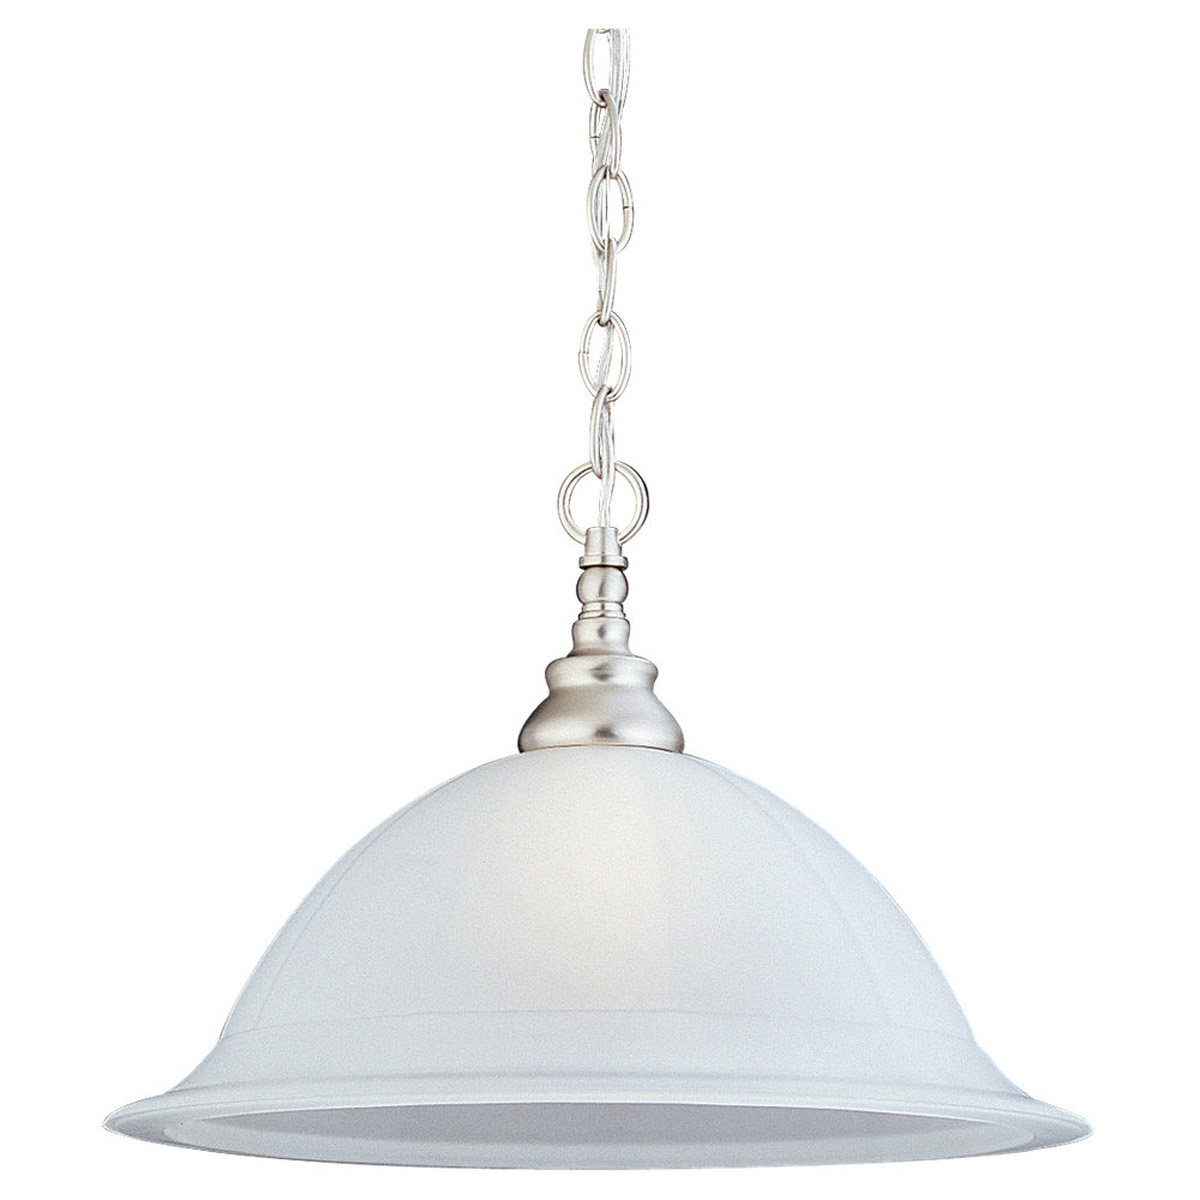 Sea Gull Lighting Canterbury 1 Light Pendant in Brushed Nickel 65050-962